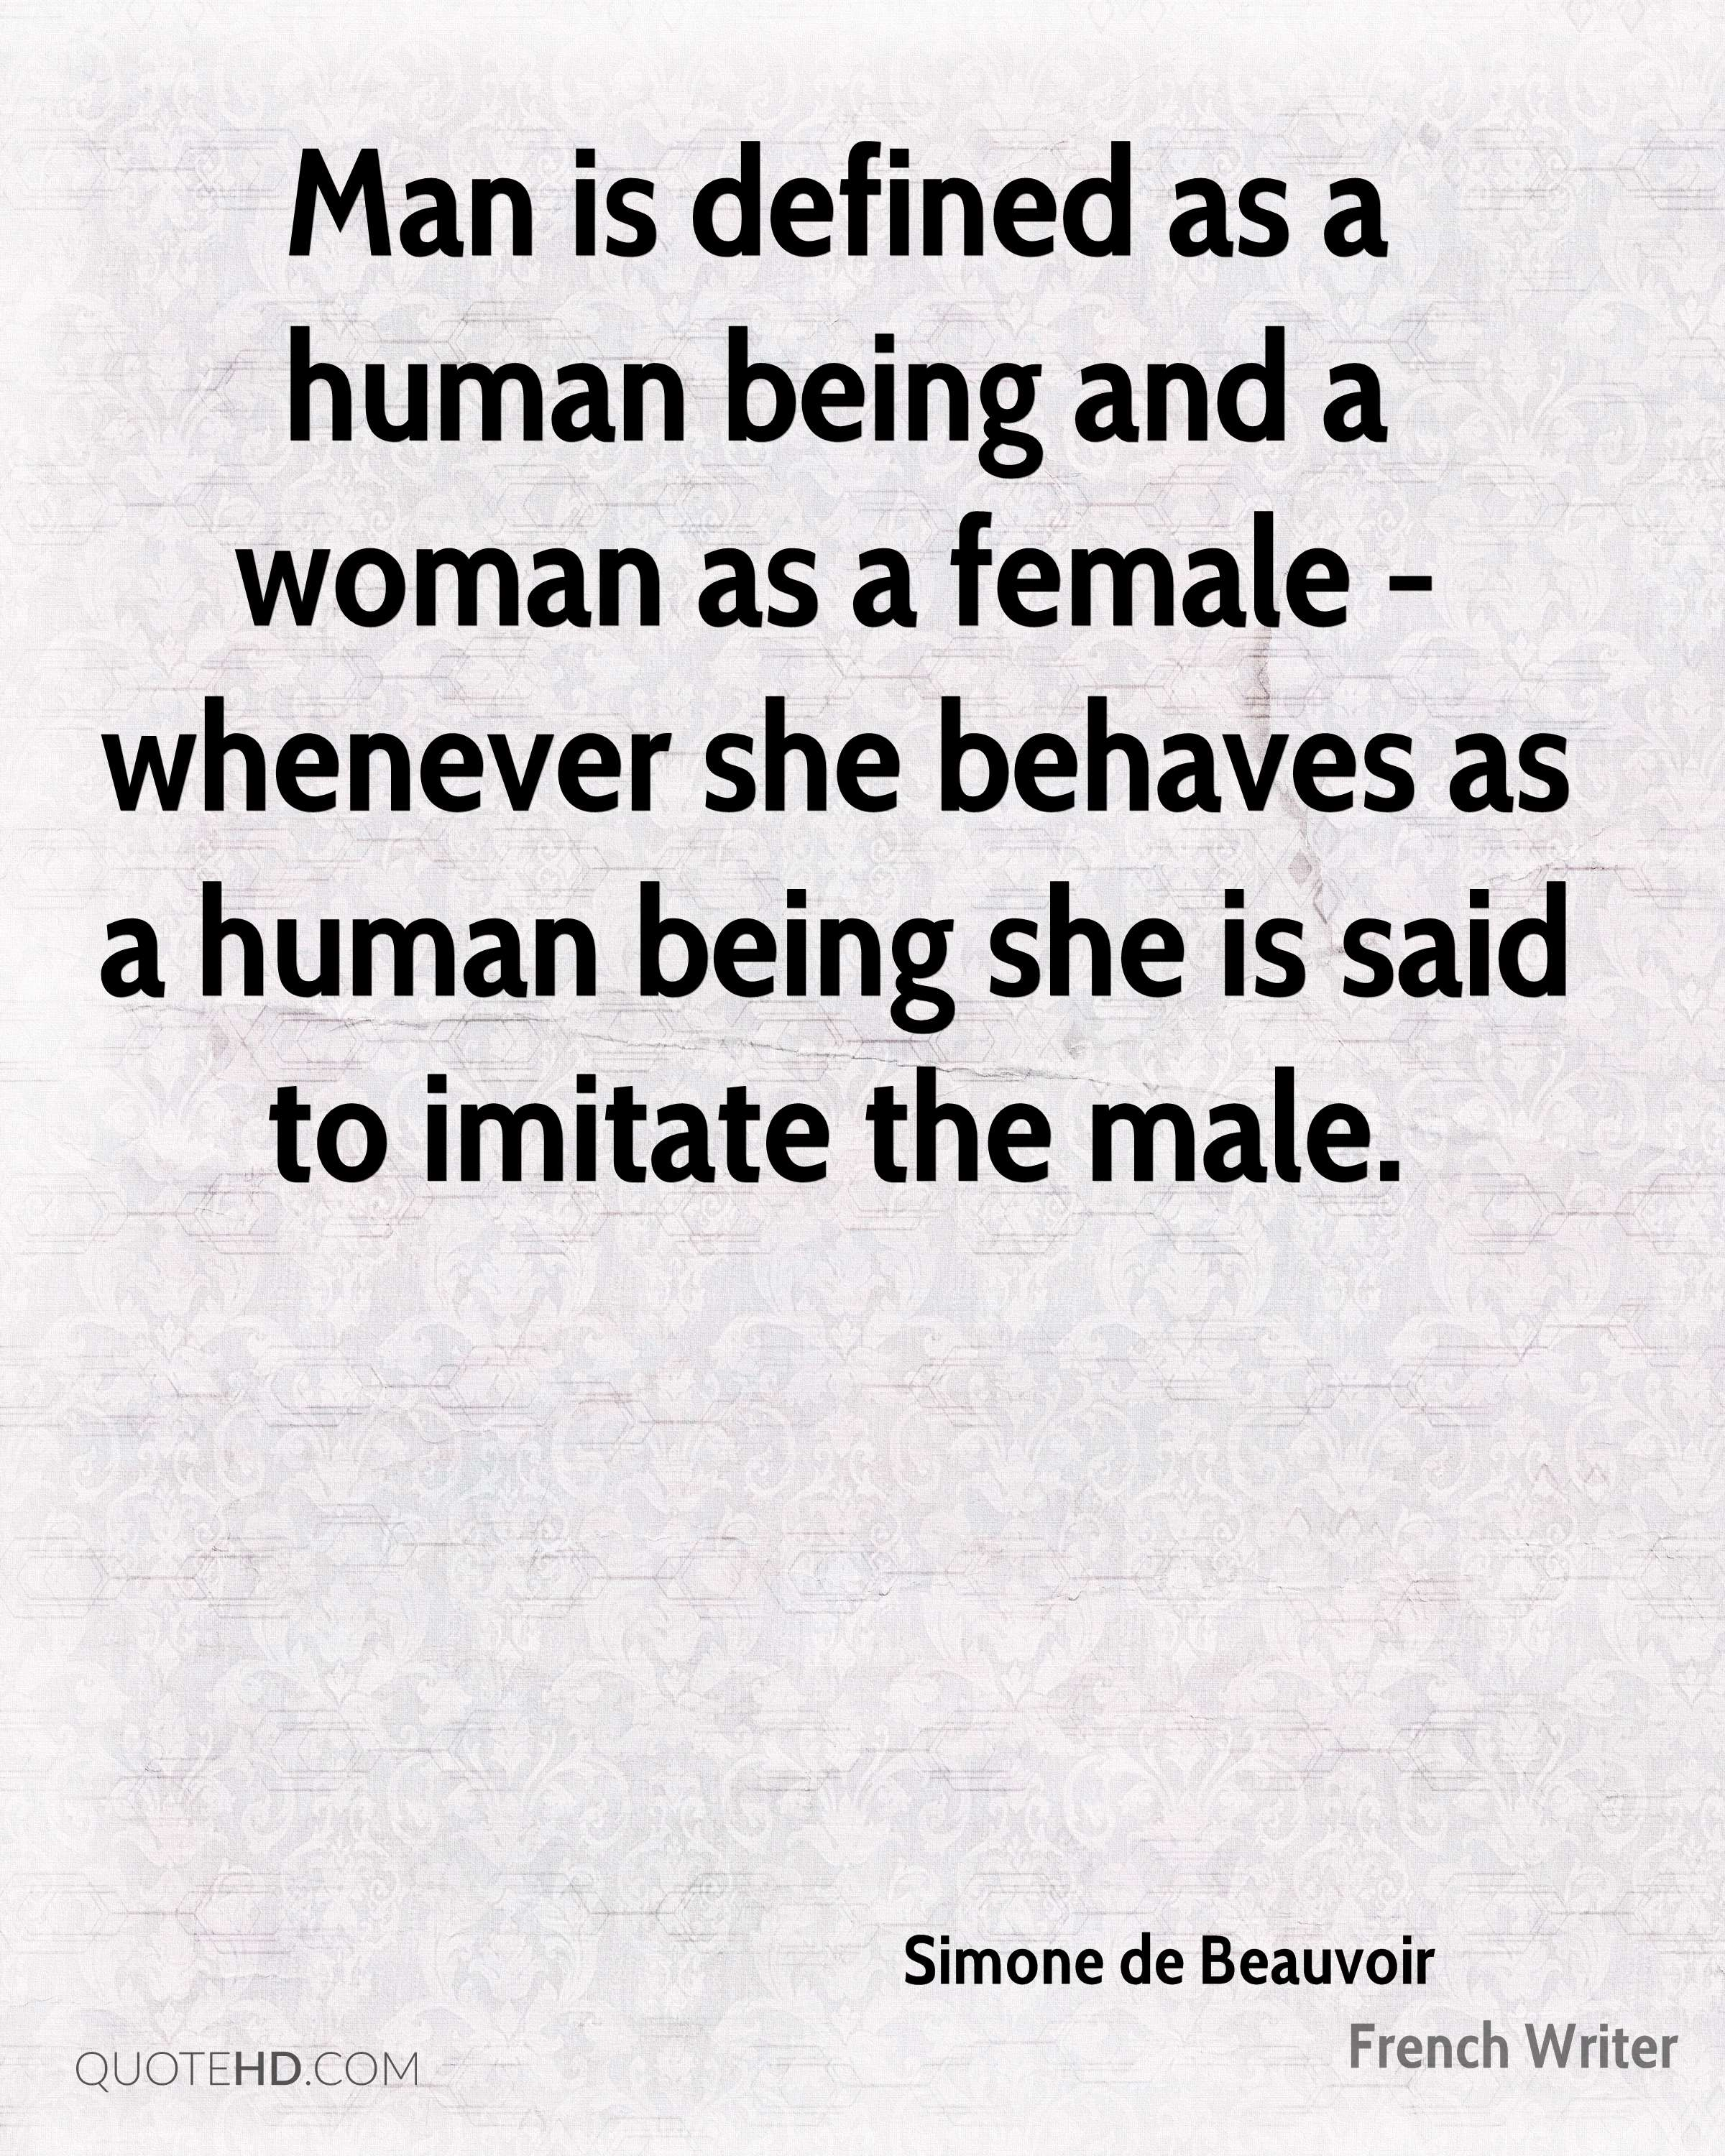 Simone de beauvoir quotes quotehd man is defined as a human being and a woman as a female whenever she voltagebd Gallery